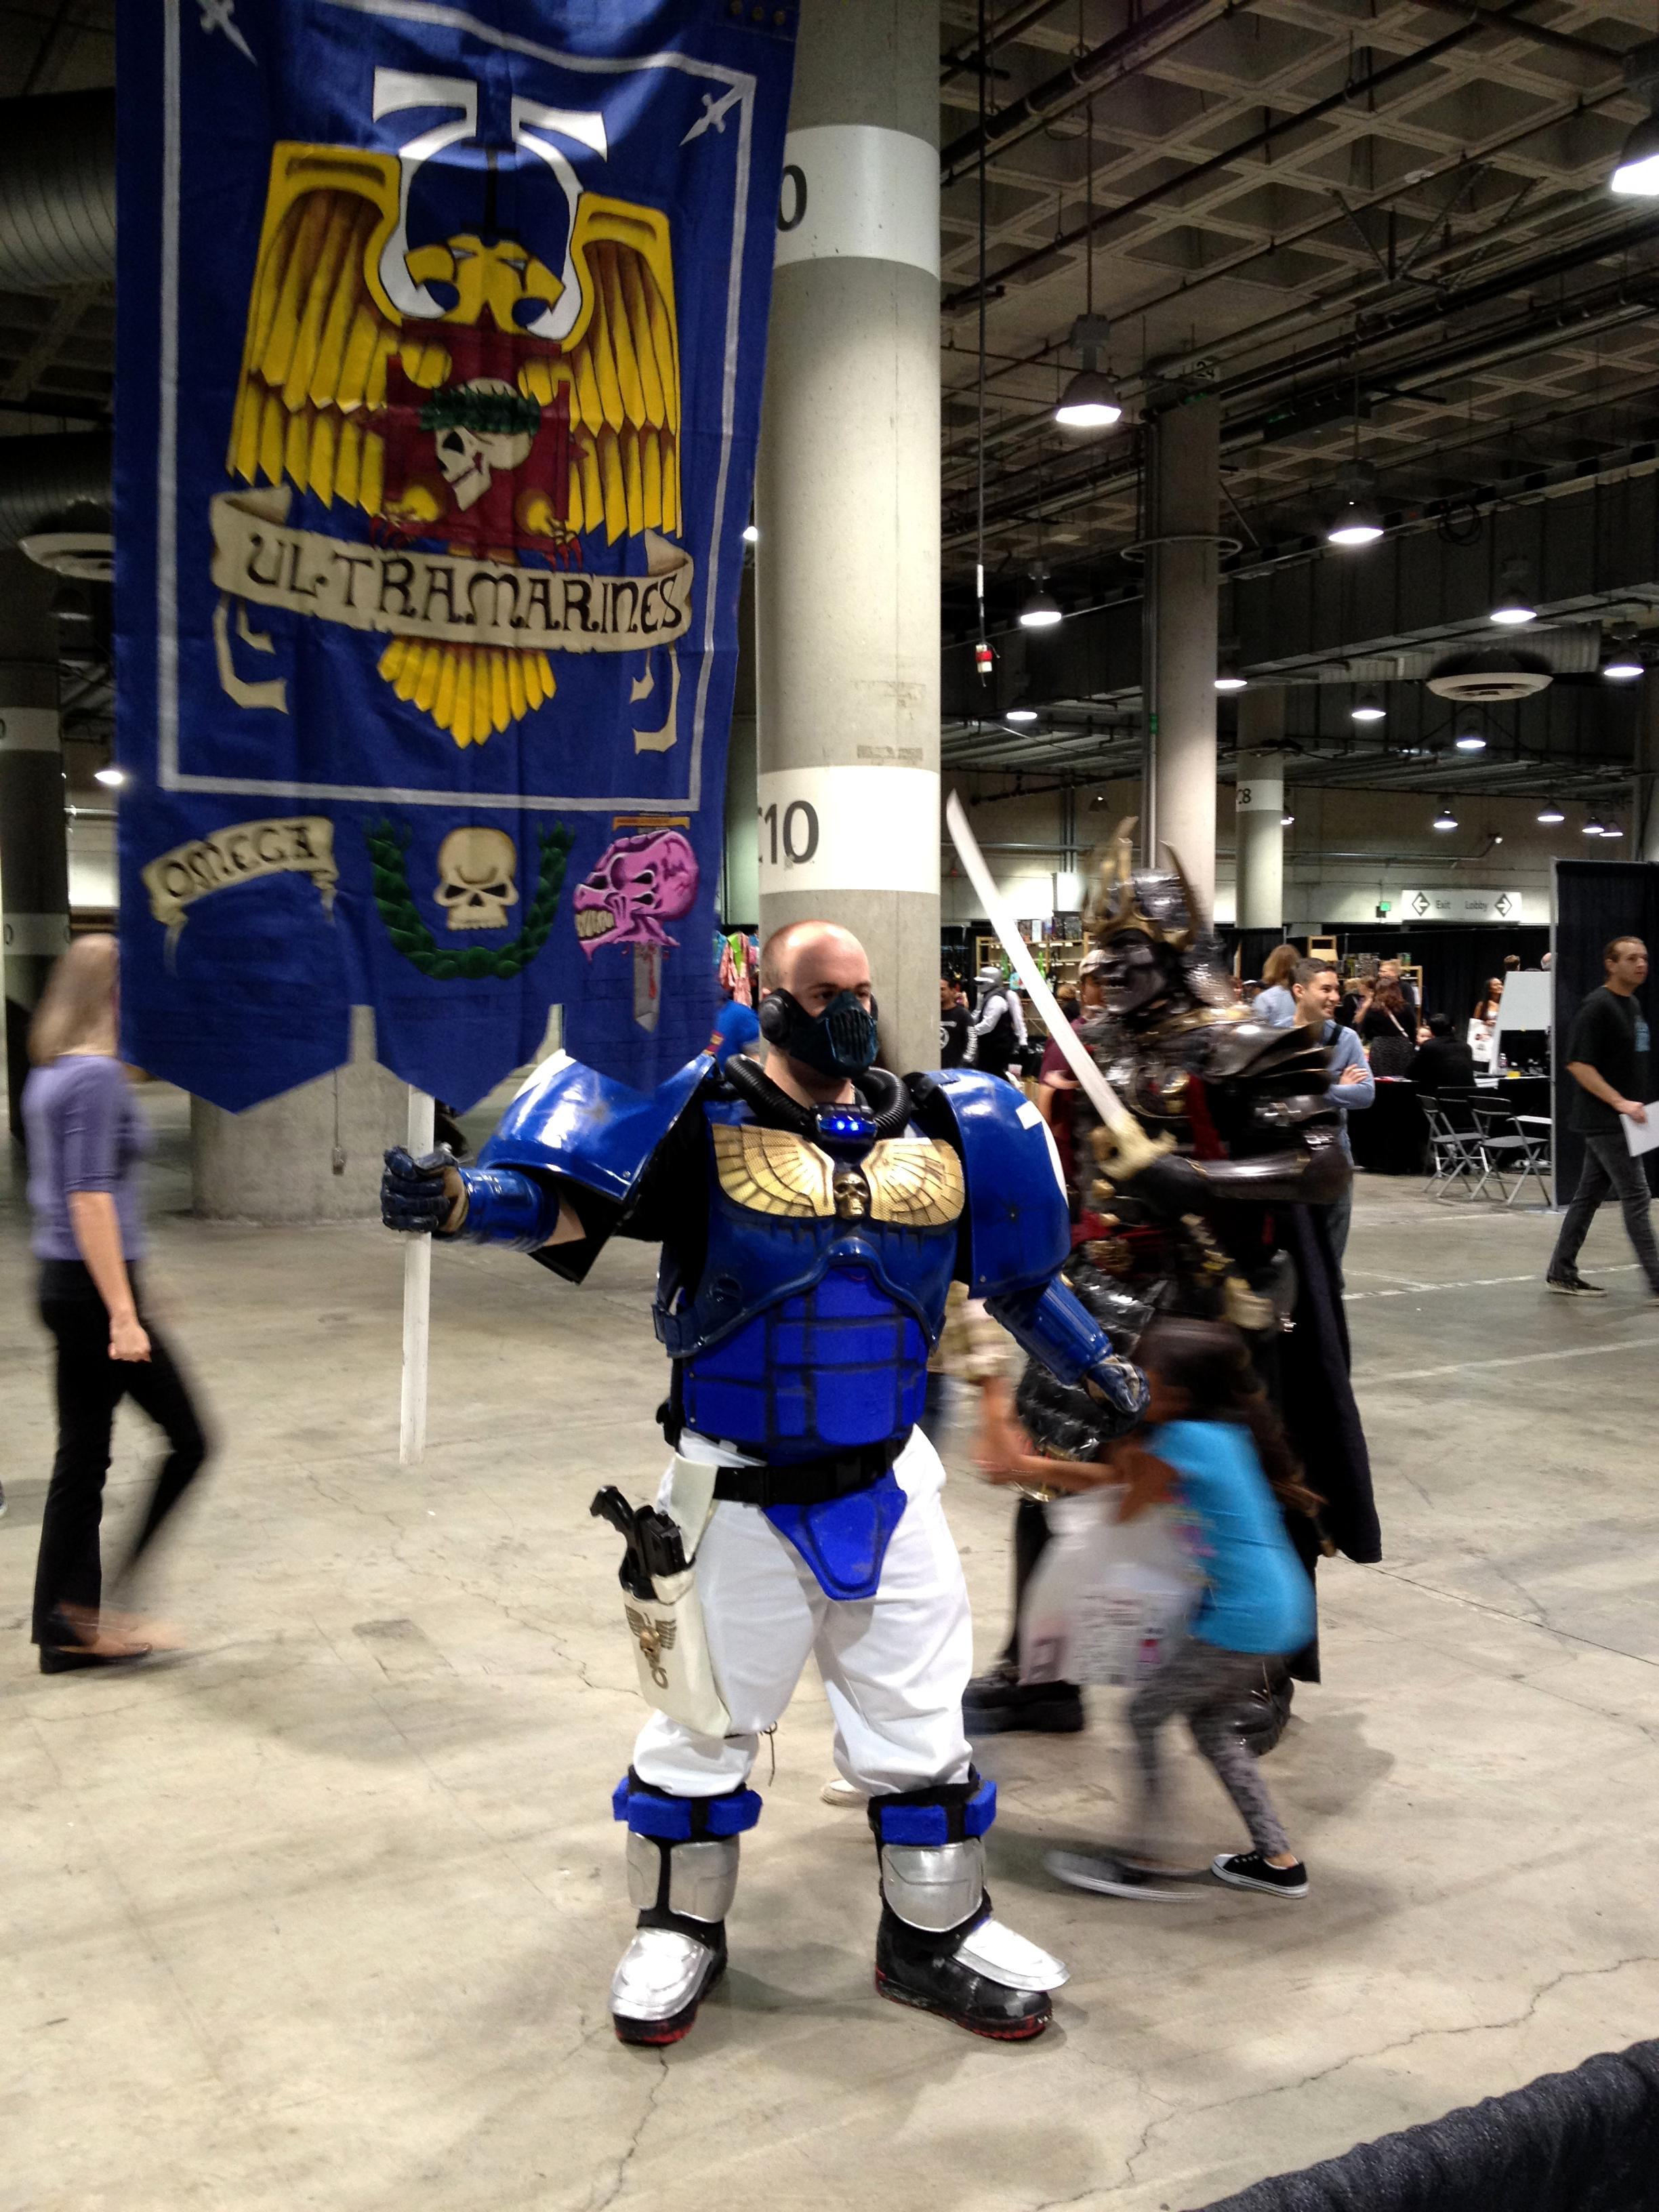 Banner, Cosplay, Costume, Scouts, Space Marines, Ultramarines